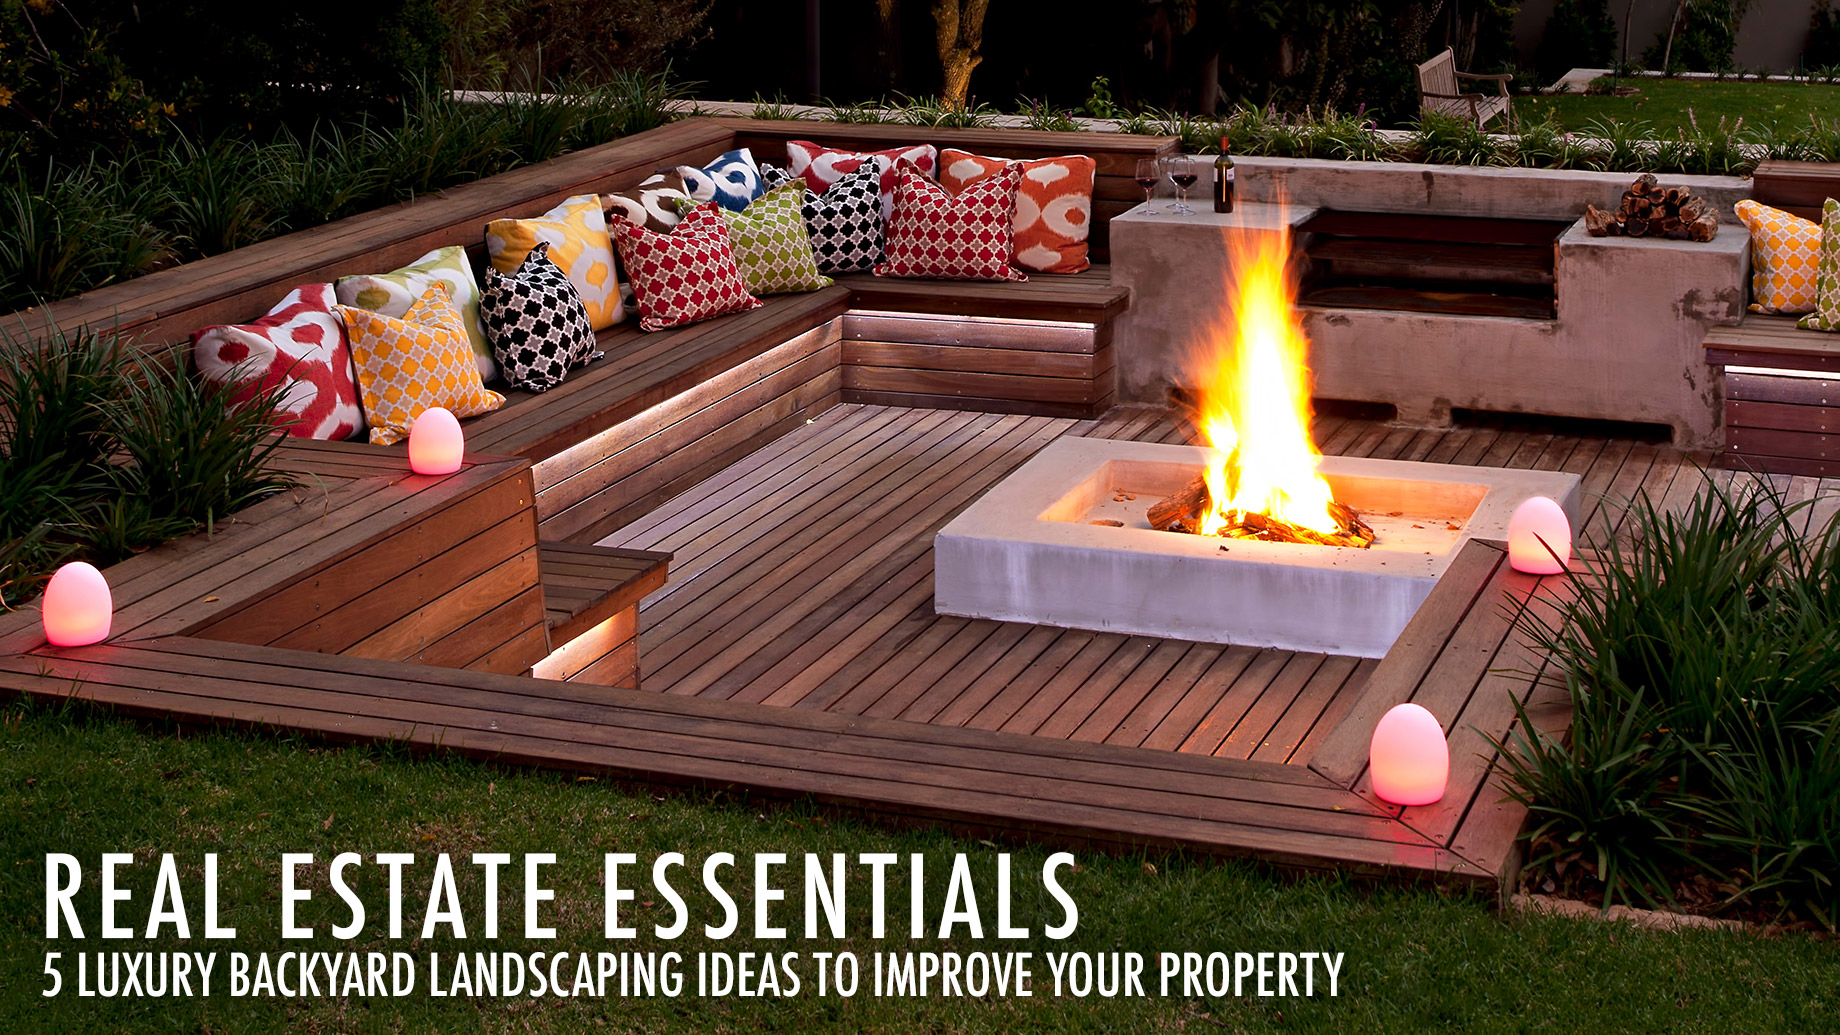 Real Estate Essentials 5 Luxury Backyard Landscaping Ideas To